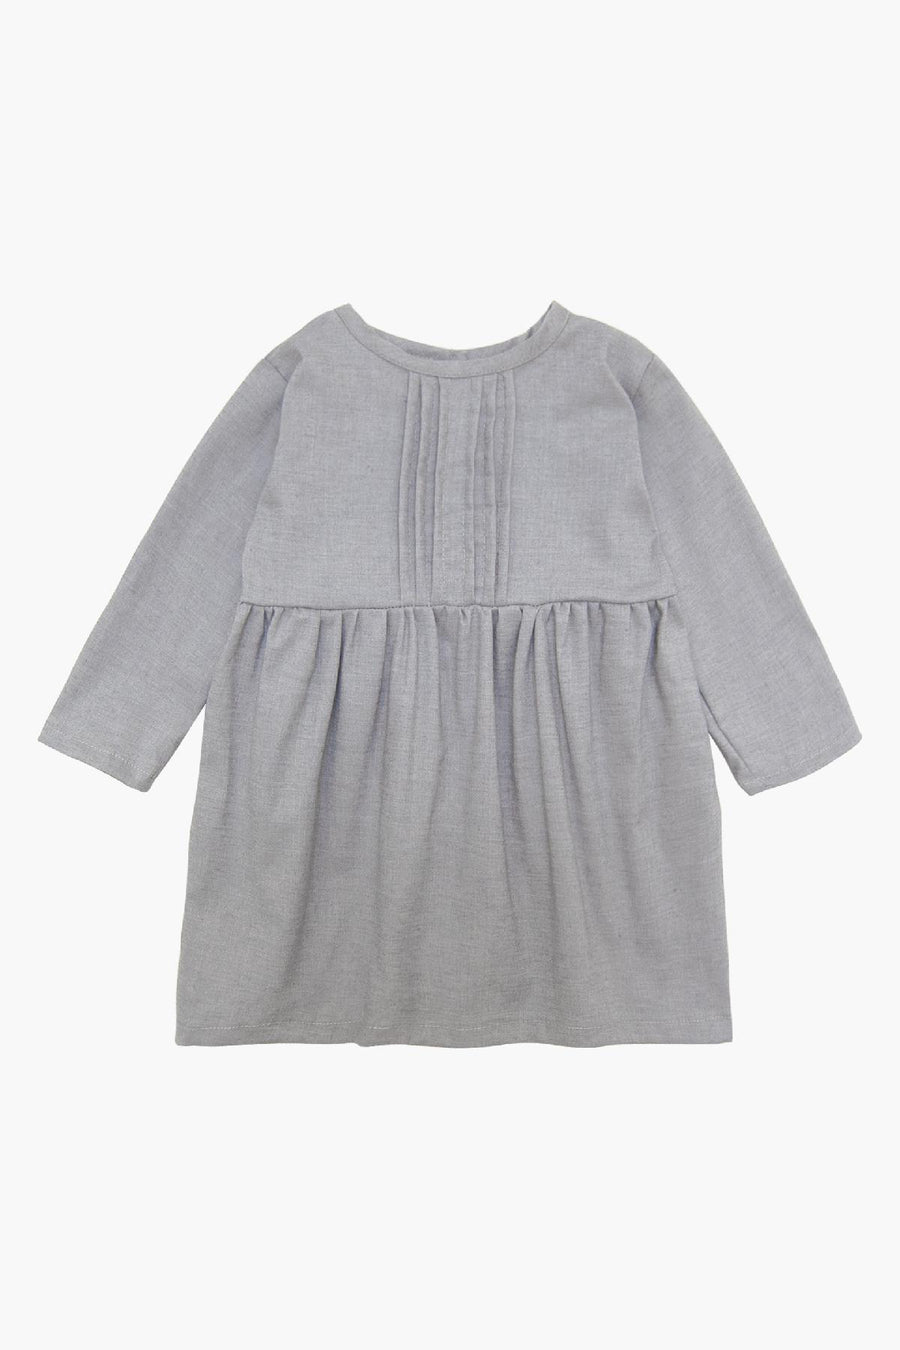 Go Gently Nation Pleated Prairie Dress